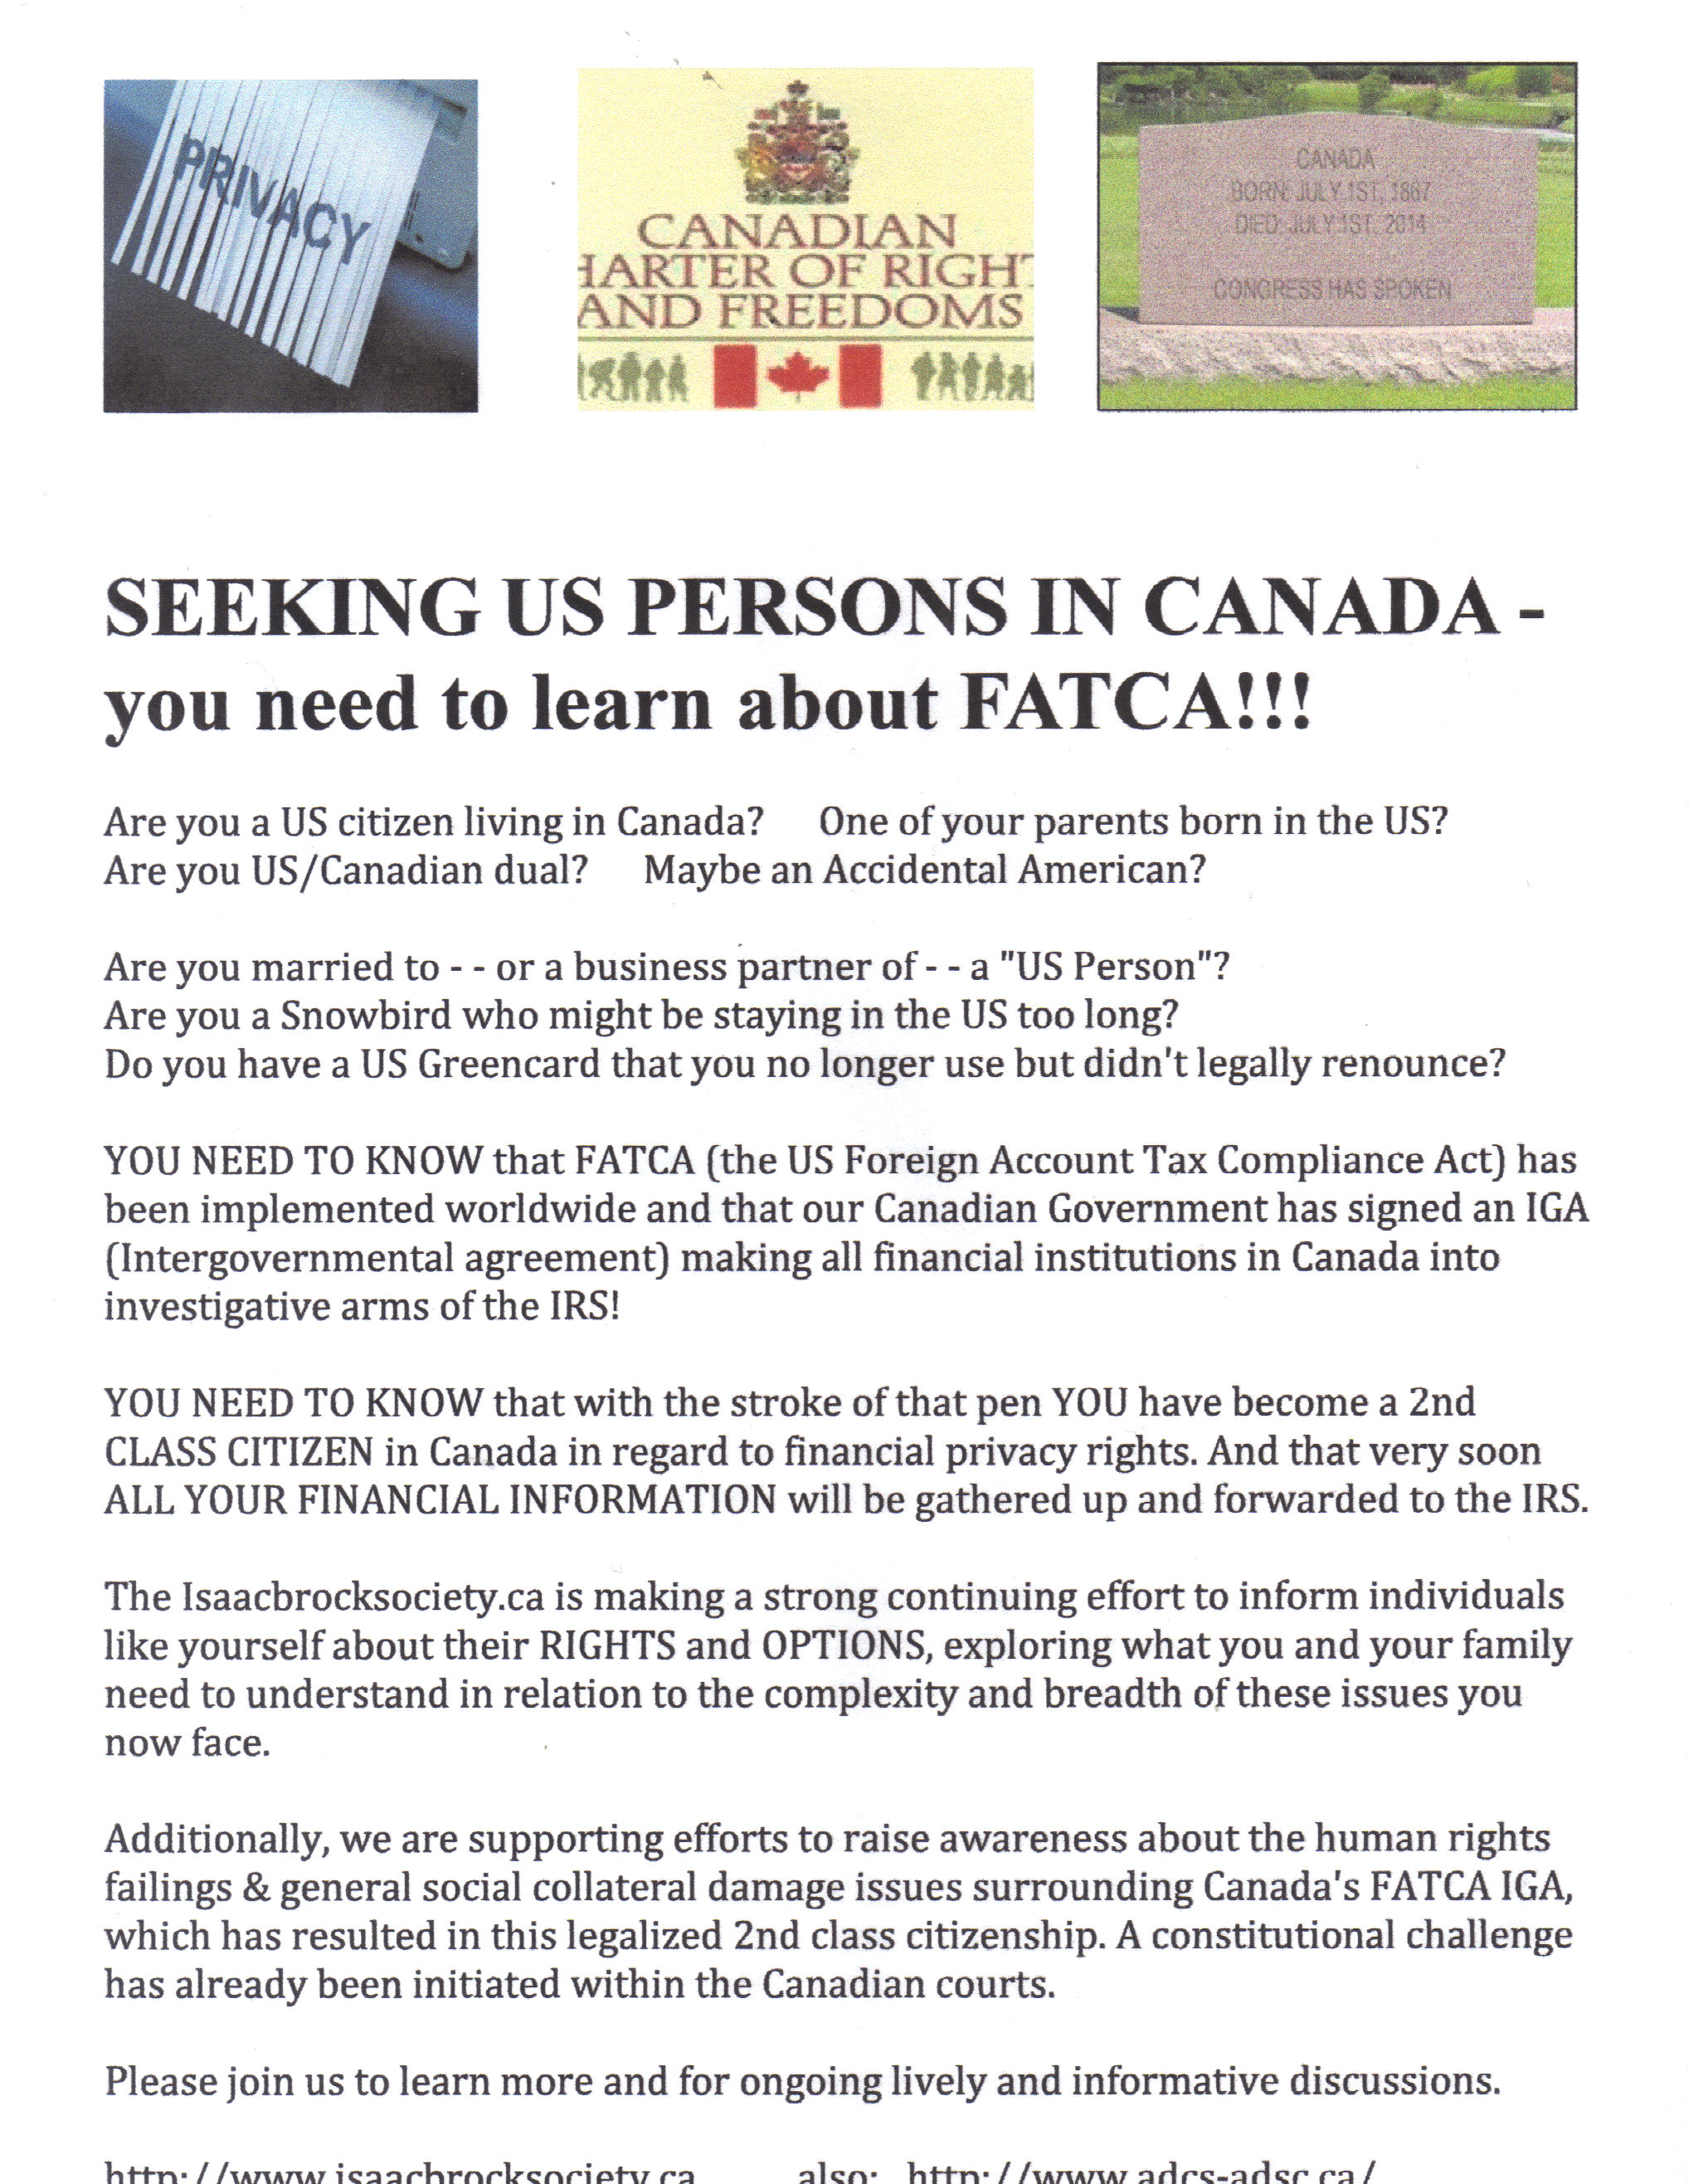 SEEKING US PERSONS IN CANADA flyer